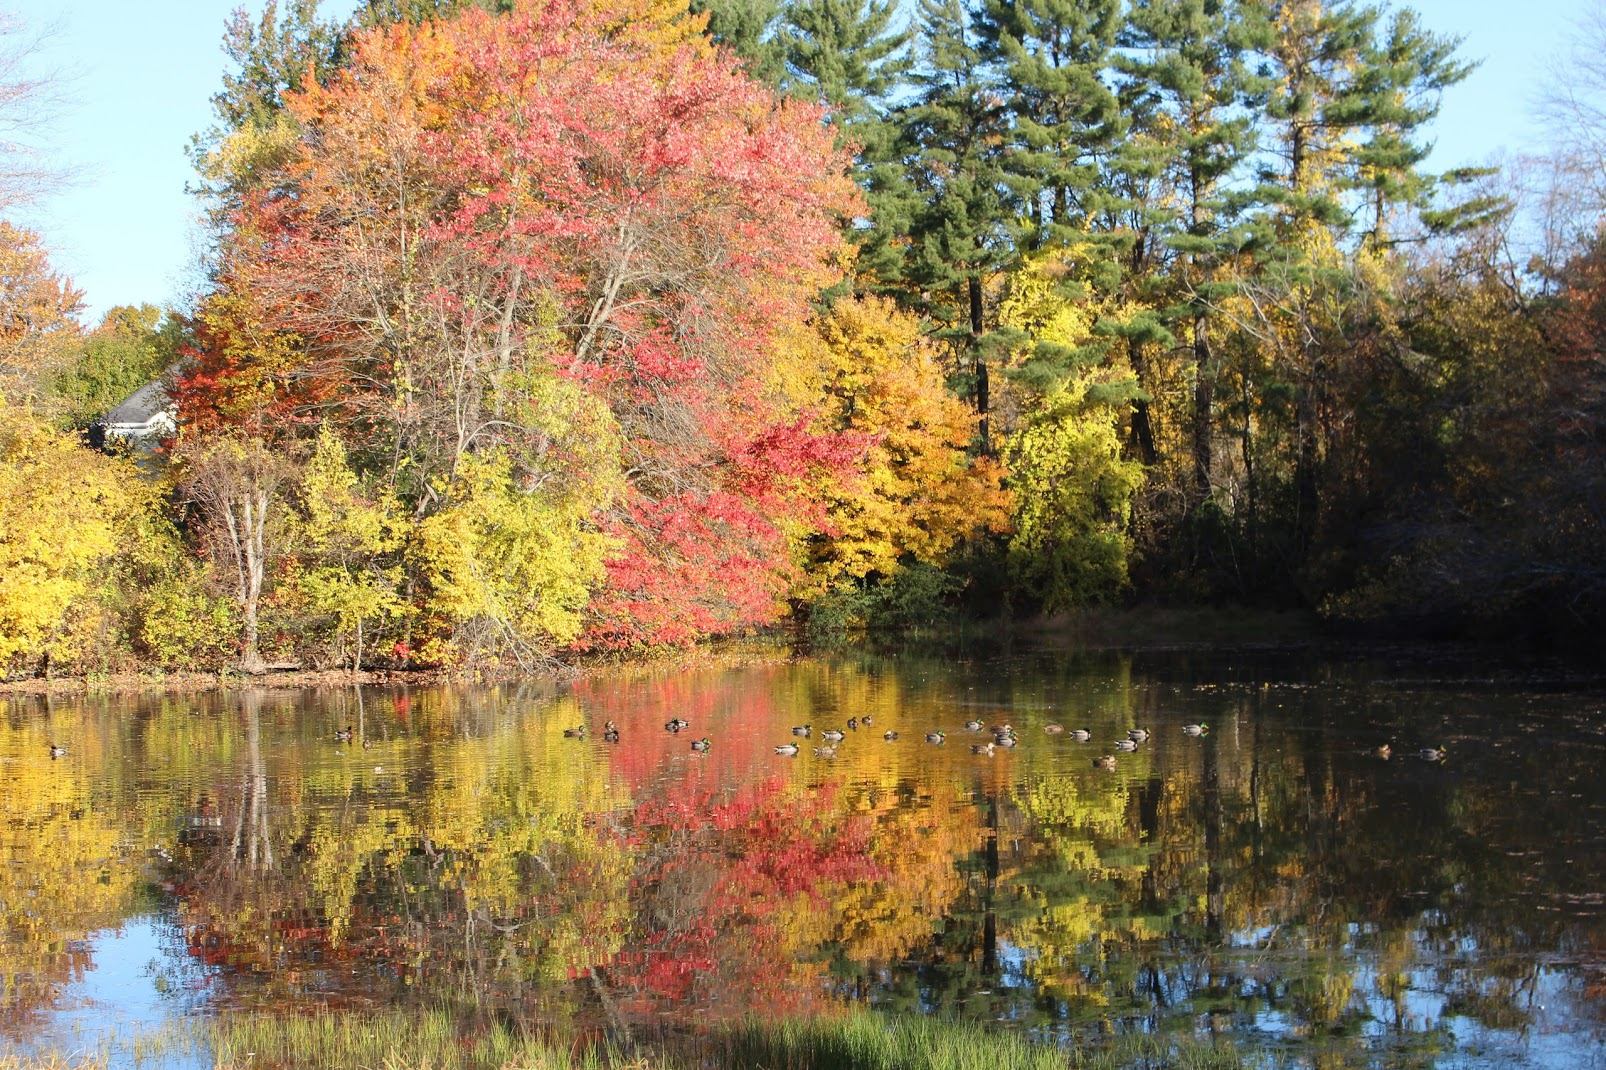 The pond on Meadowbrook's campus -November 1, 2016